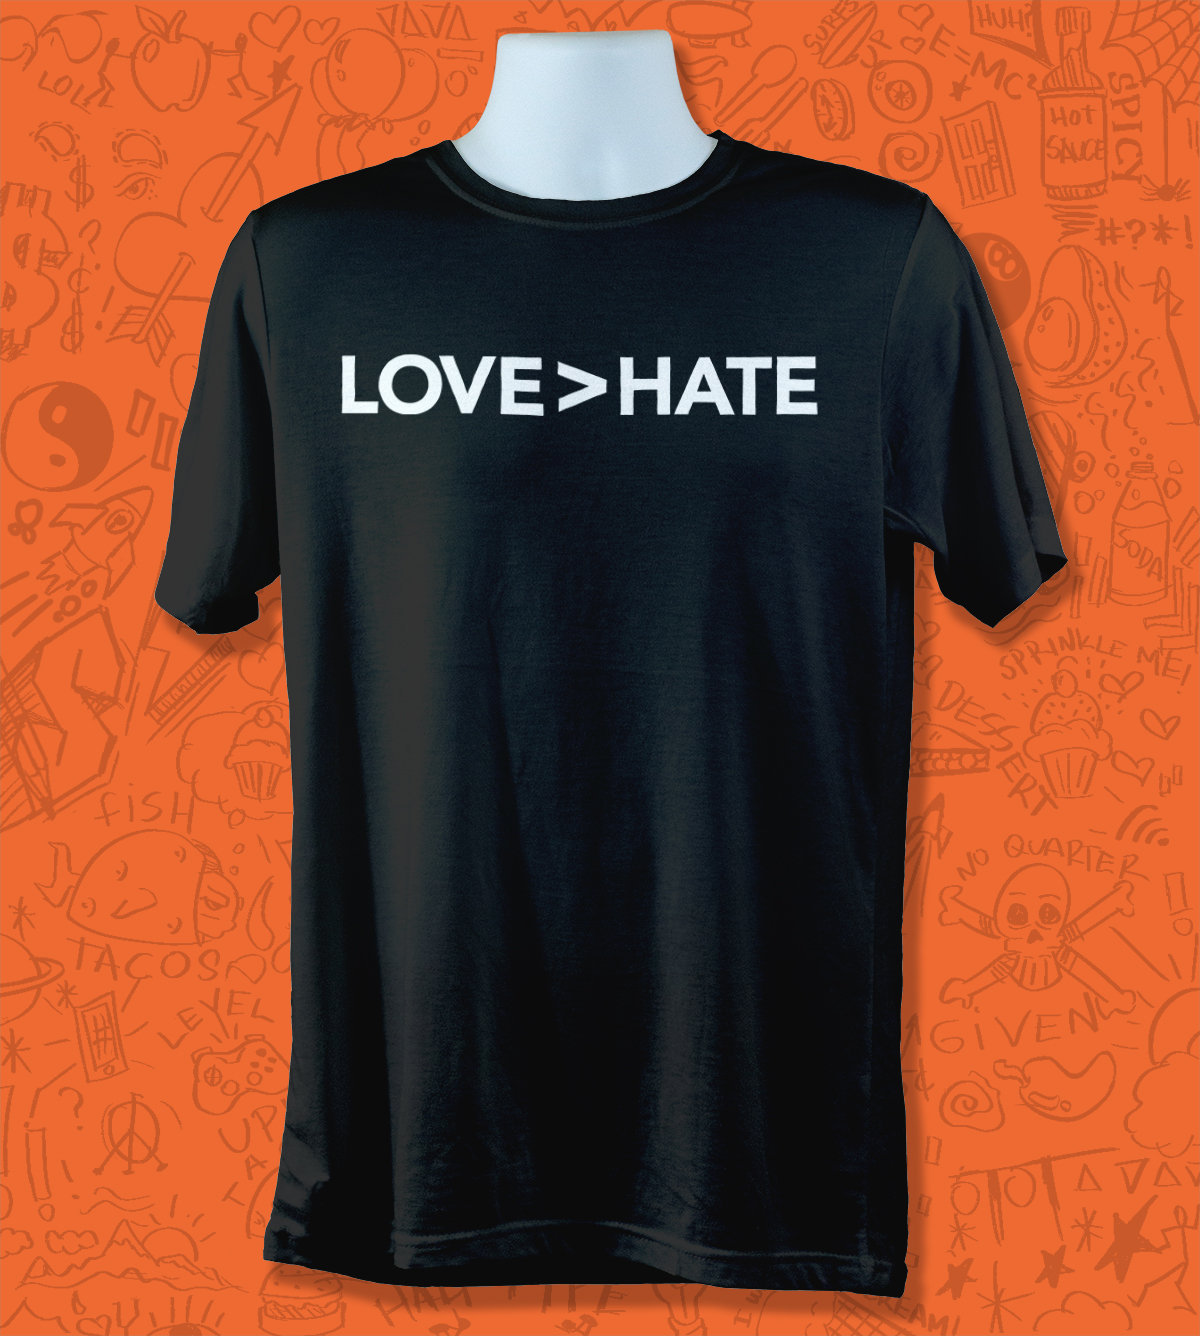 Unisex Gift for Men and Women Love greater than Hate shirt Anti Hatred Tee Pro Happiness Top Love over hate Tshirt